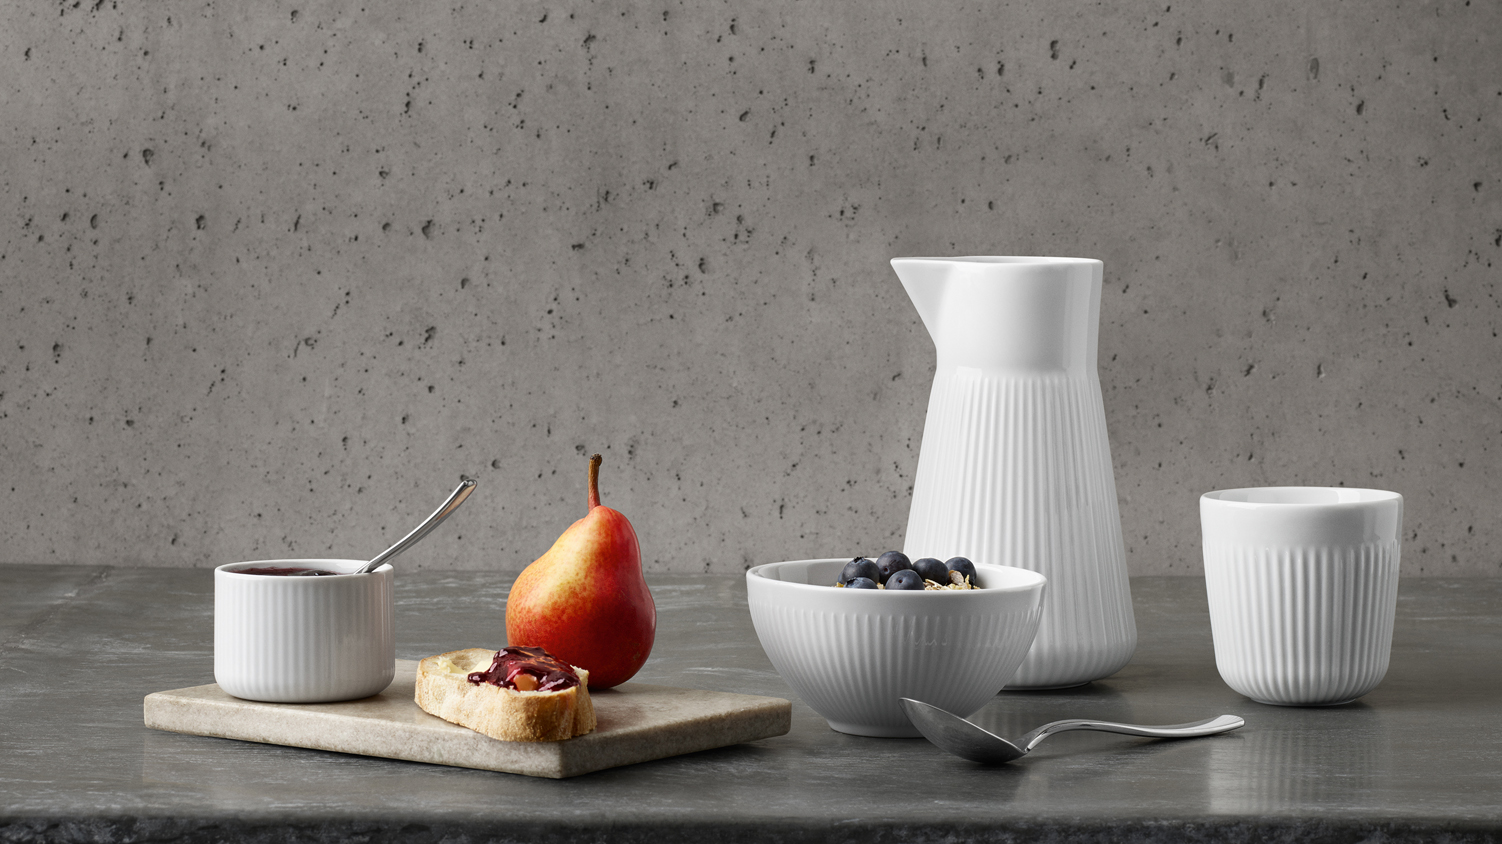 <p>The Legio Nova tableware consists of many different items. Find them all here.</p>